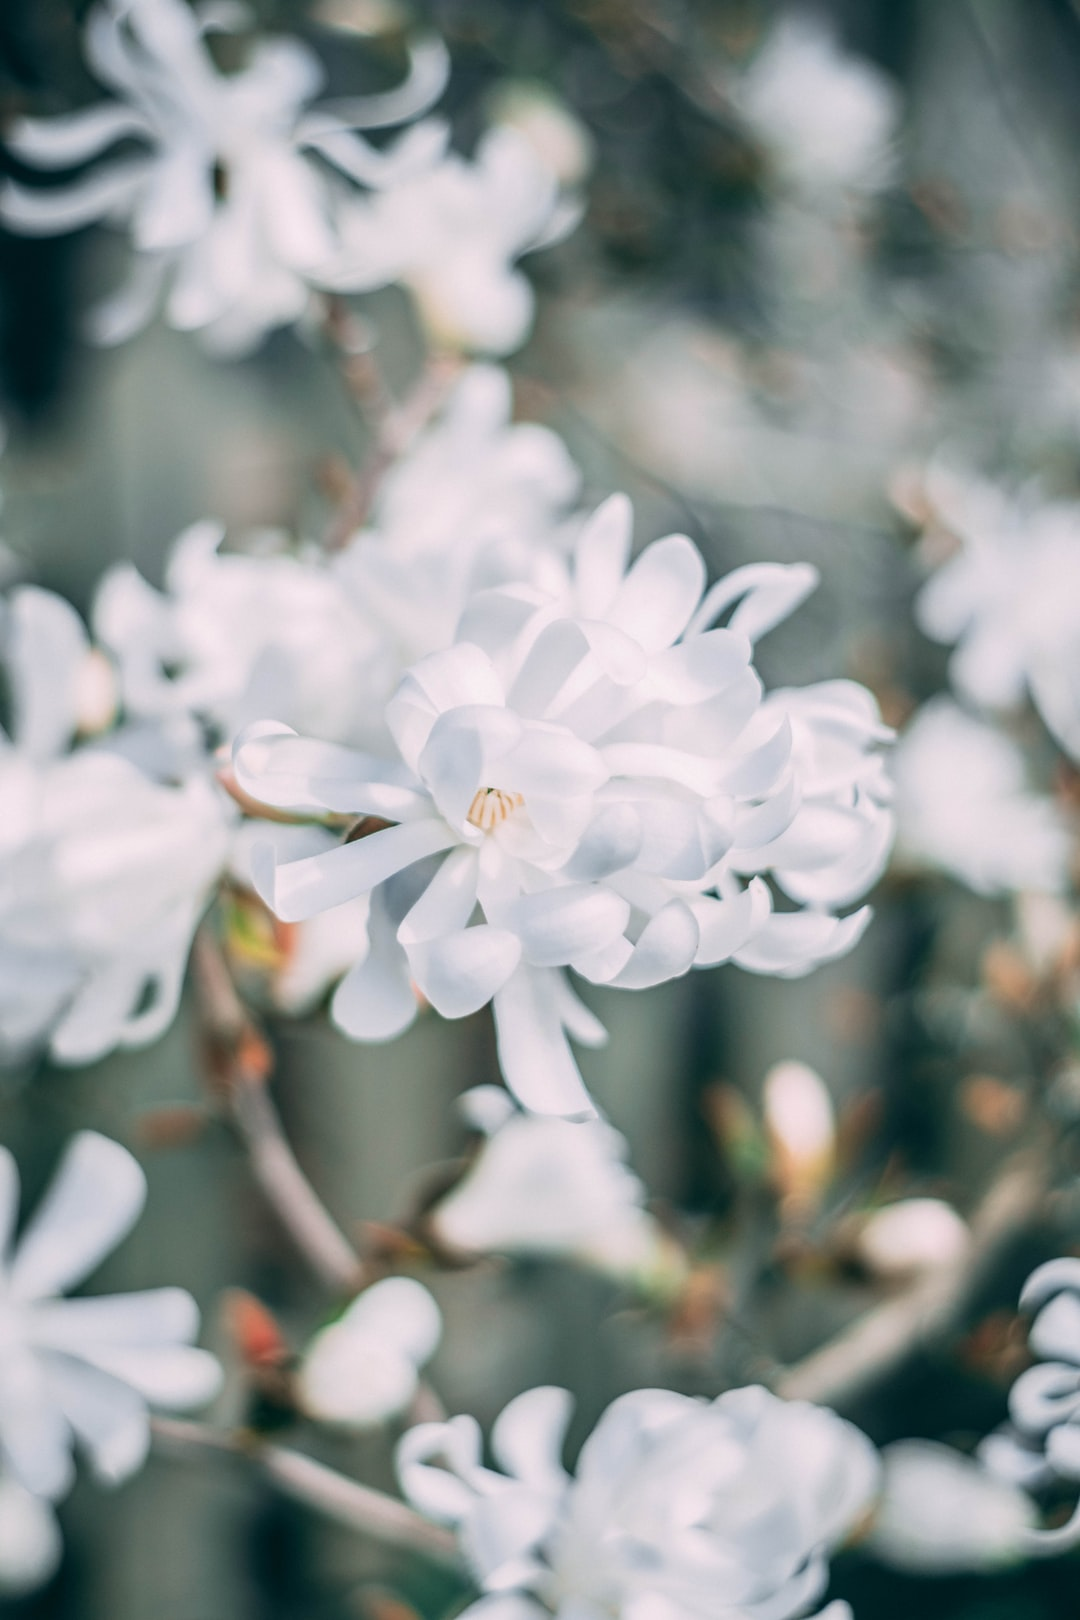 White Flowers Pictures Download Free Images On Unsplash